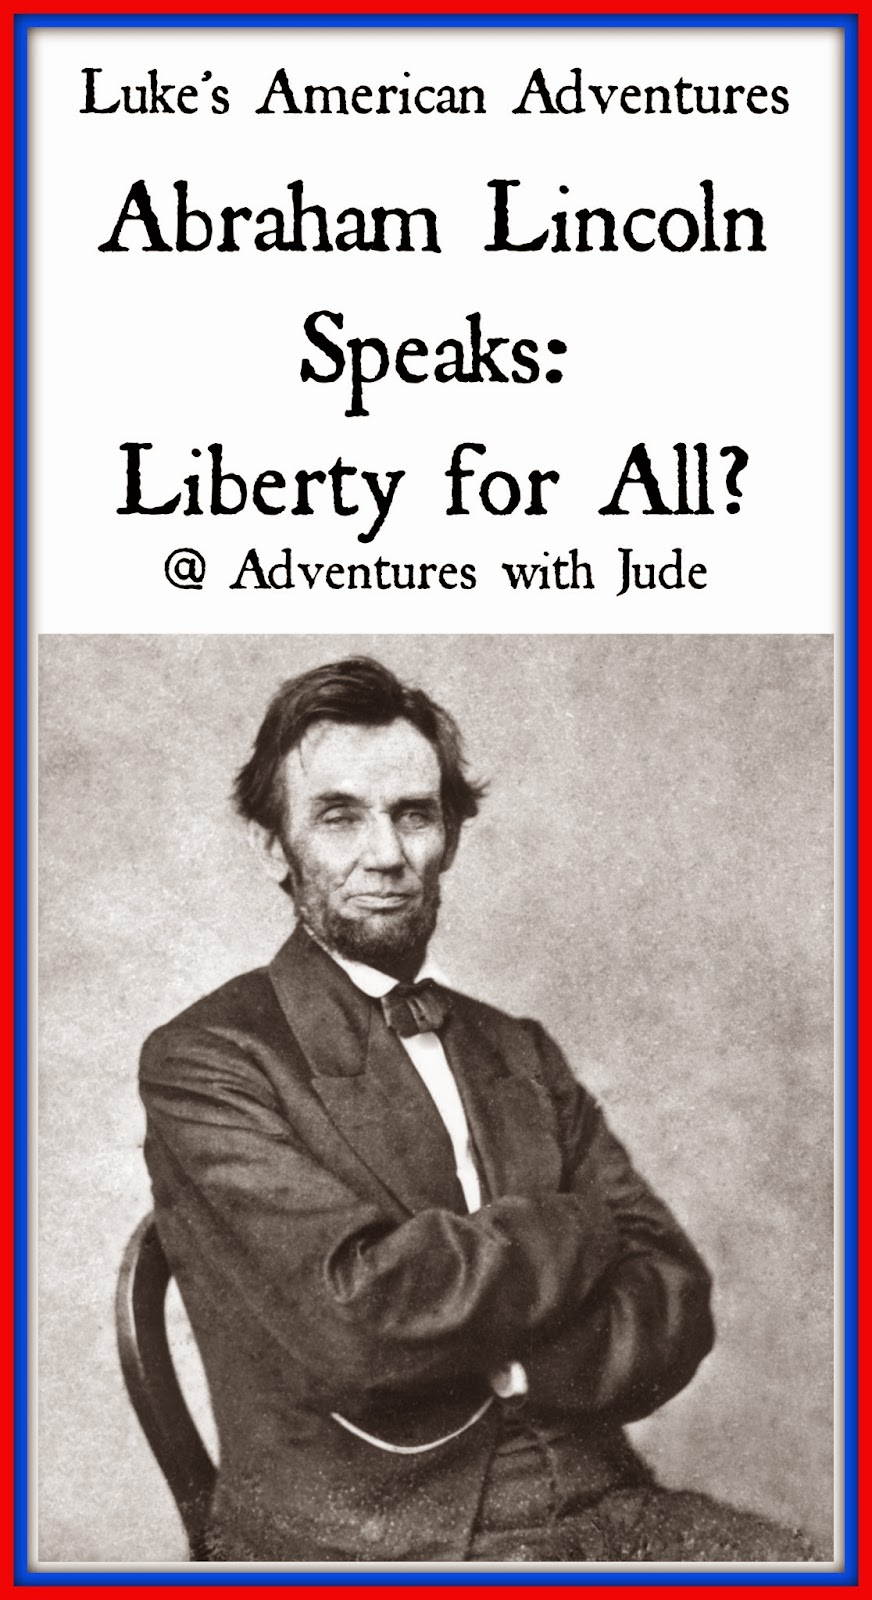 Abraham Lincoln Speaks: Liberty for All?